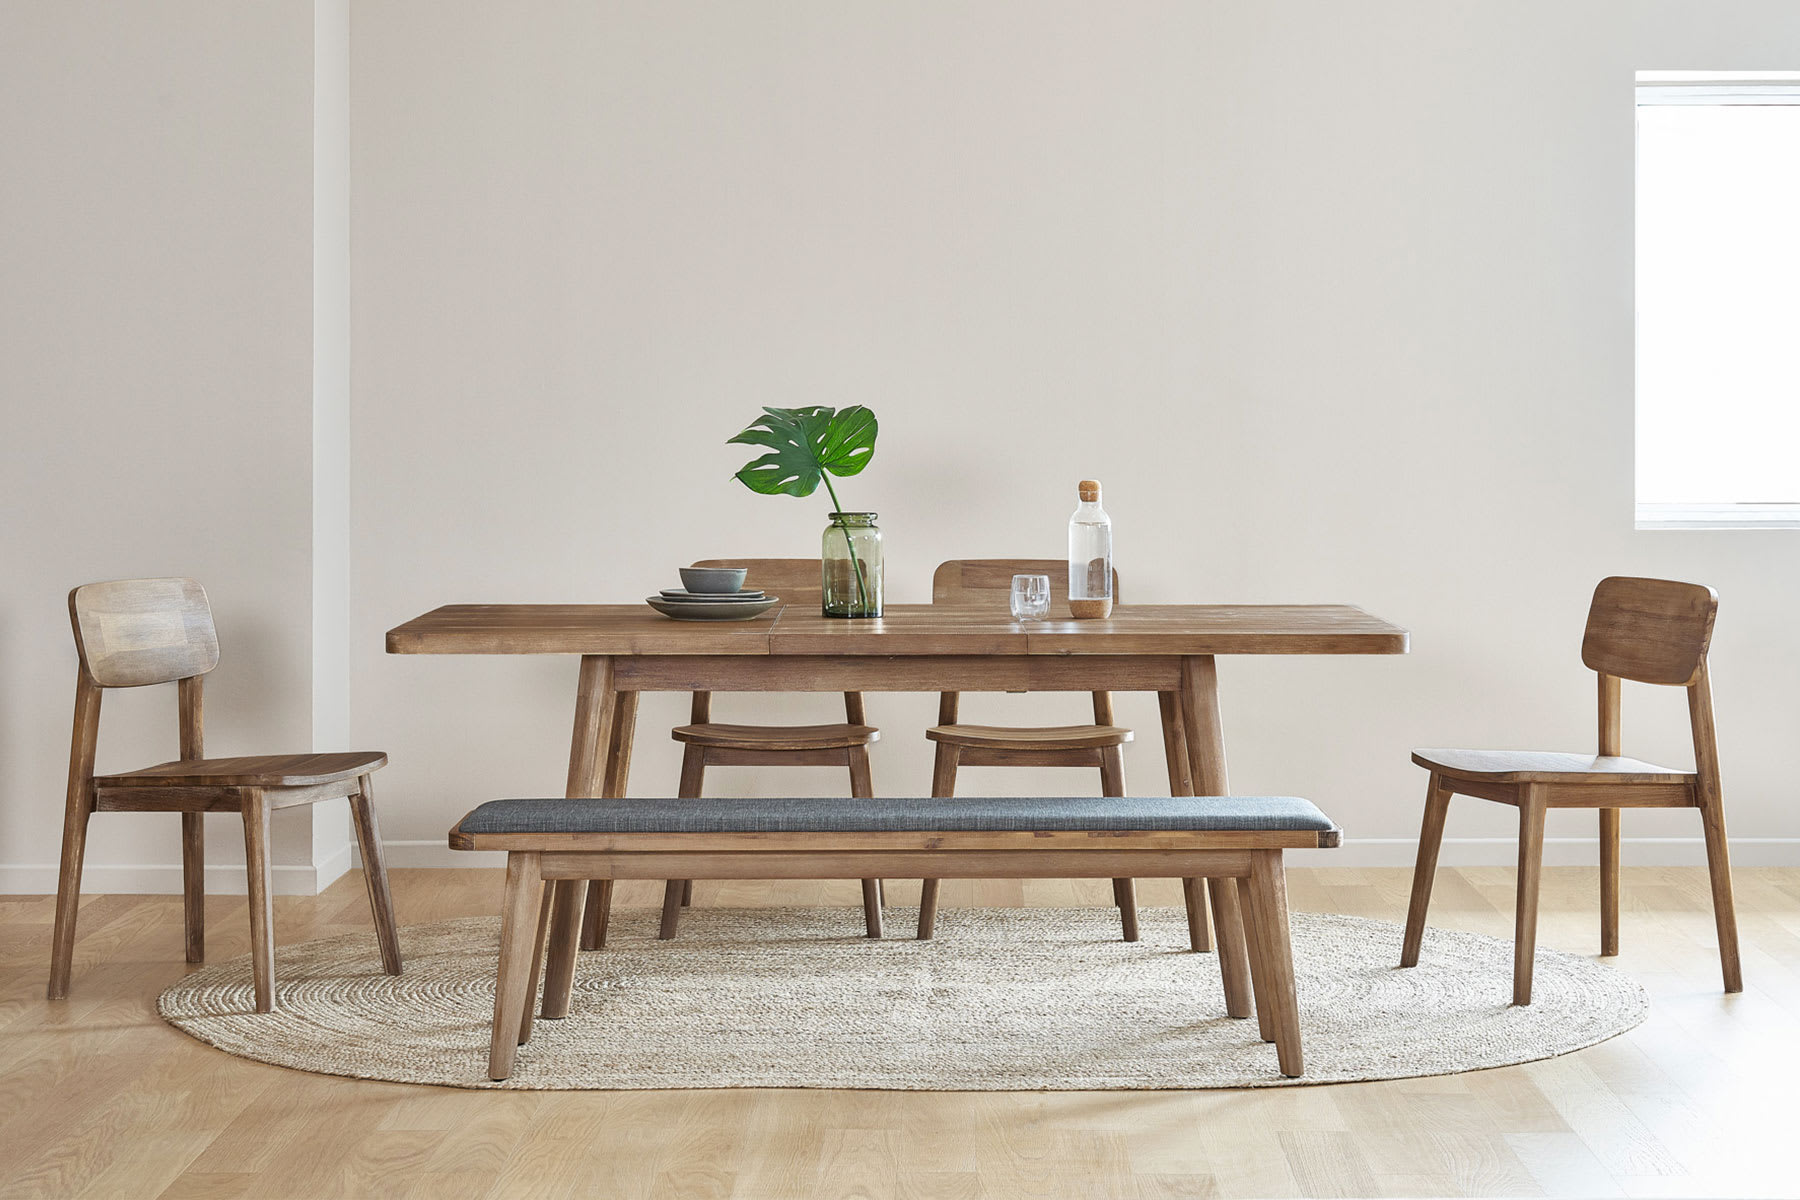 Rectangular dining table, bench and chairs in dining room